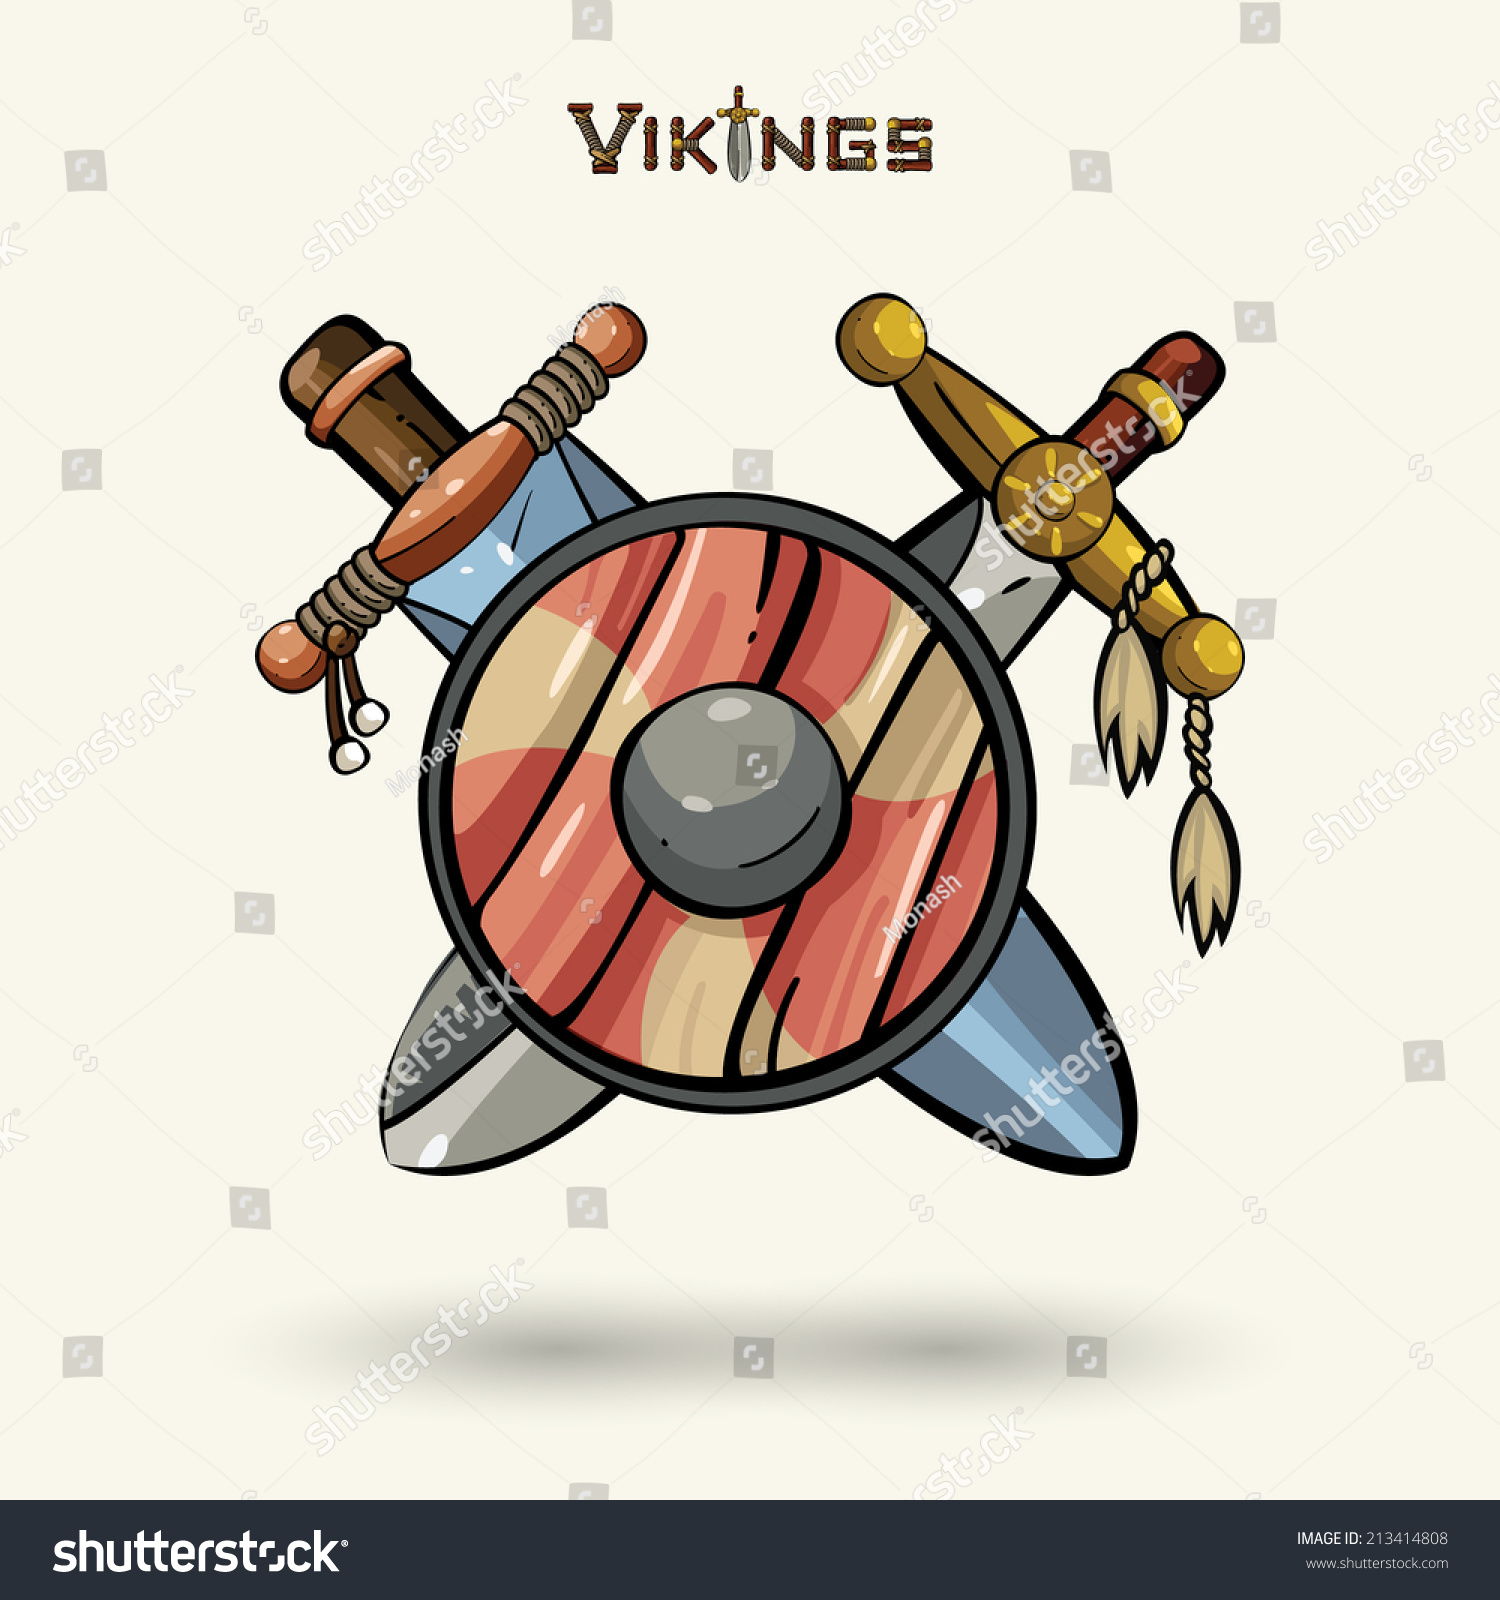 vikings emblem medieval weapons game icons stock vector 213414808